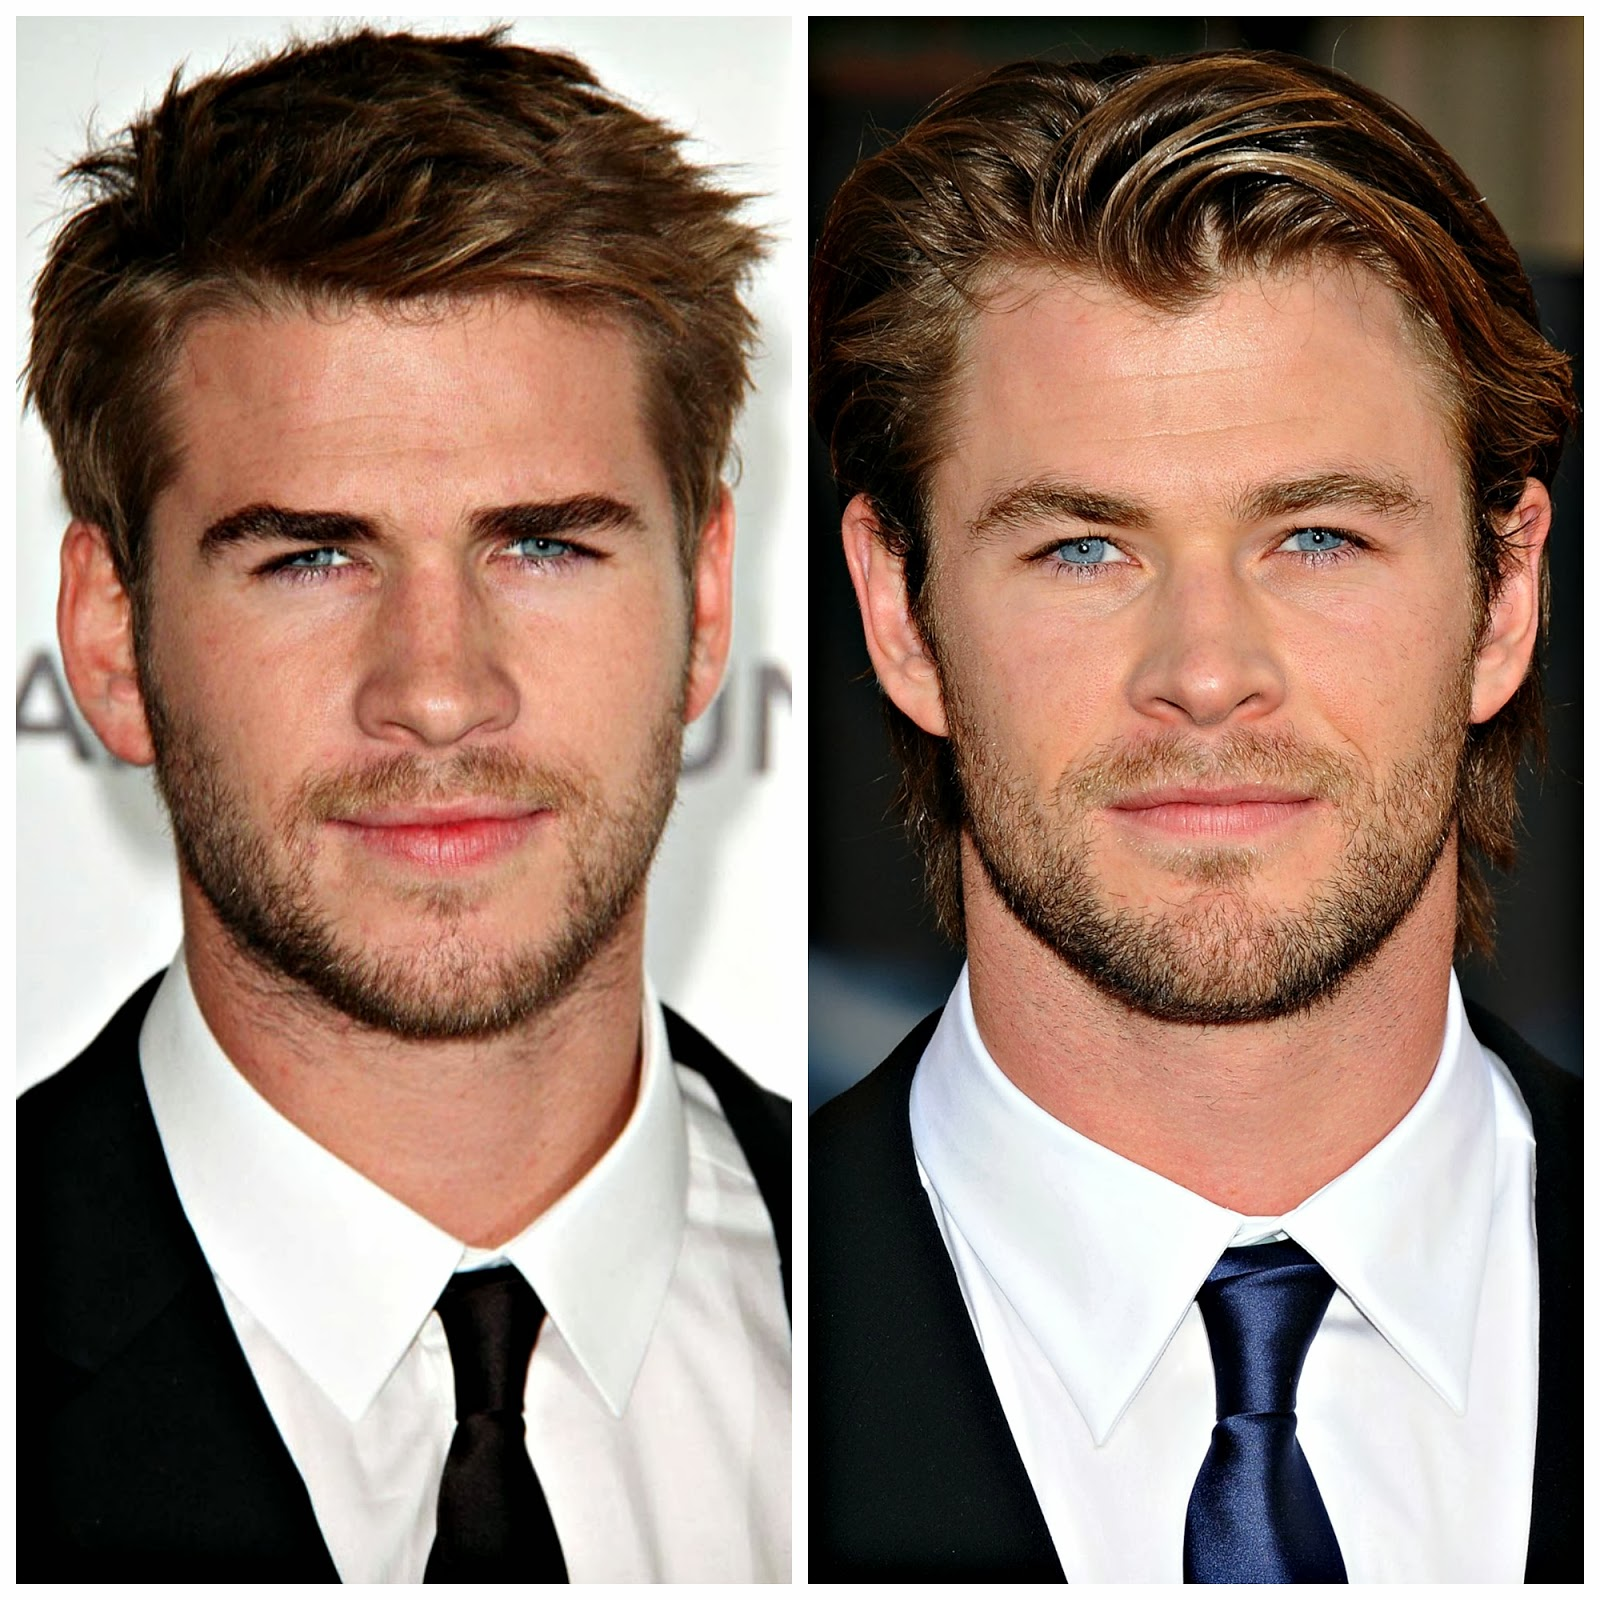 chris hemsworth dating Hosted from 6pm to 8pm, the chris hemsworth fan meet will only be possible if you buy a 75ml (or larger) bottle of hugo boss fragrance from sephora stores.